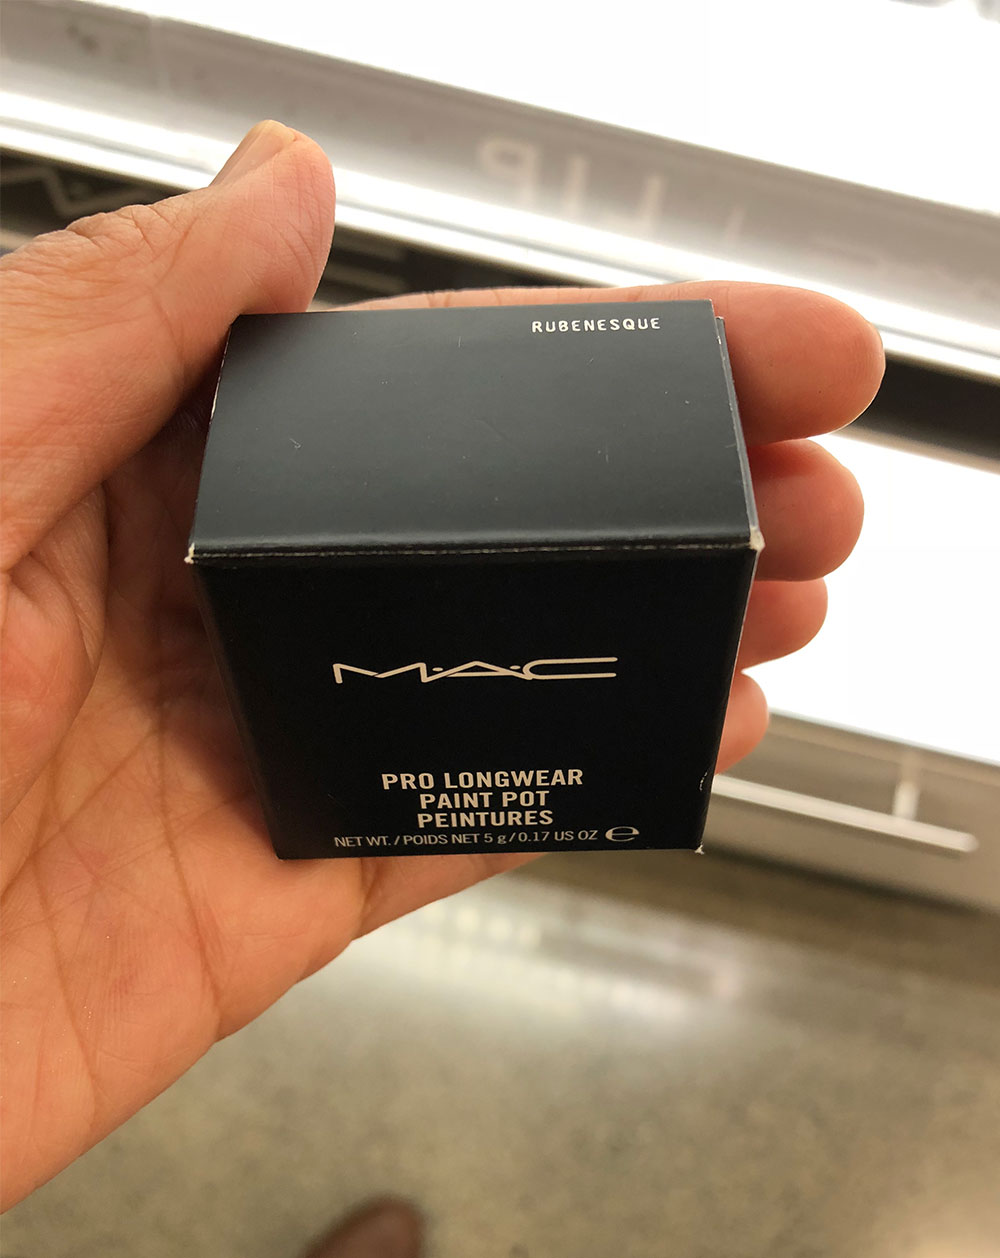 mac rubenesque paint pot packaging